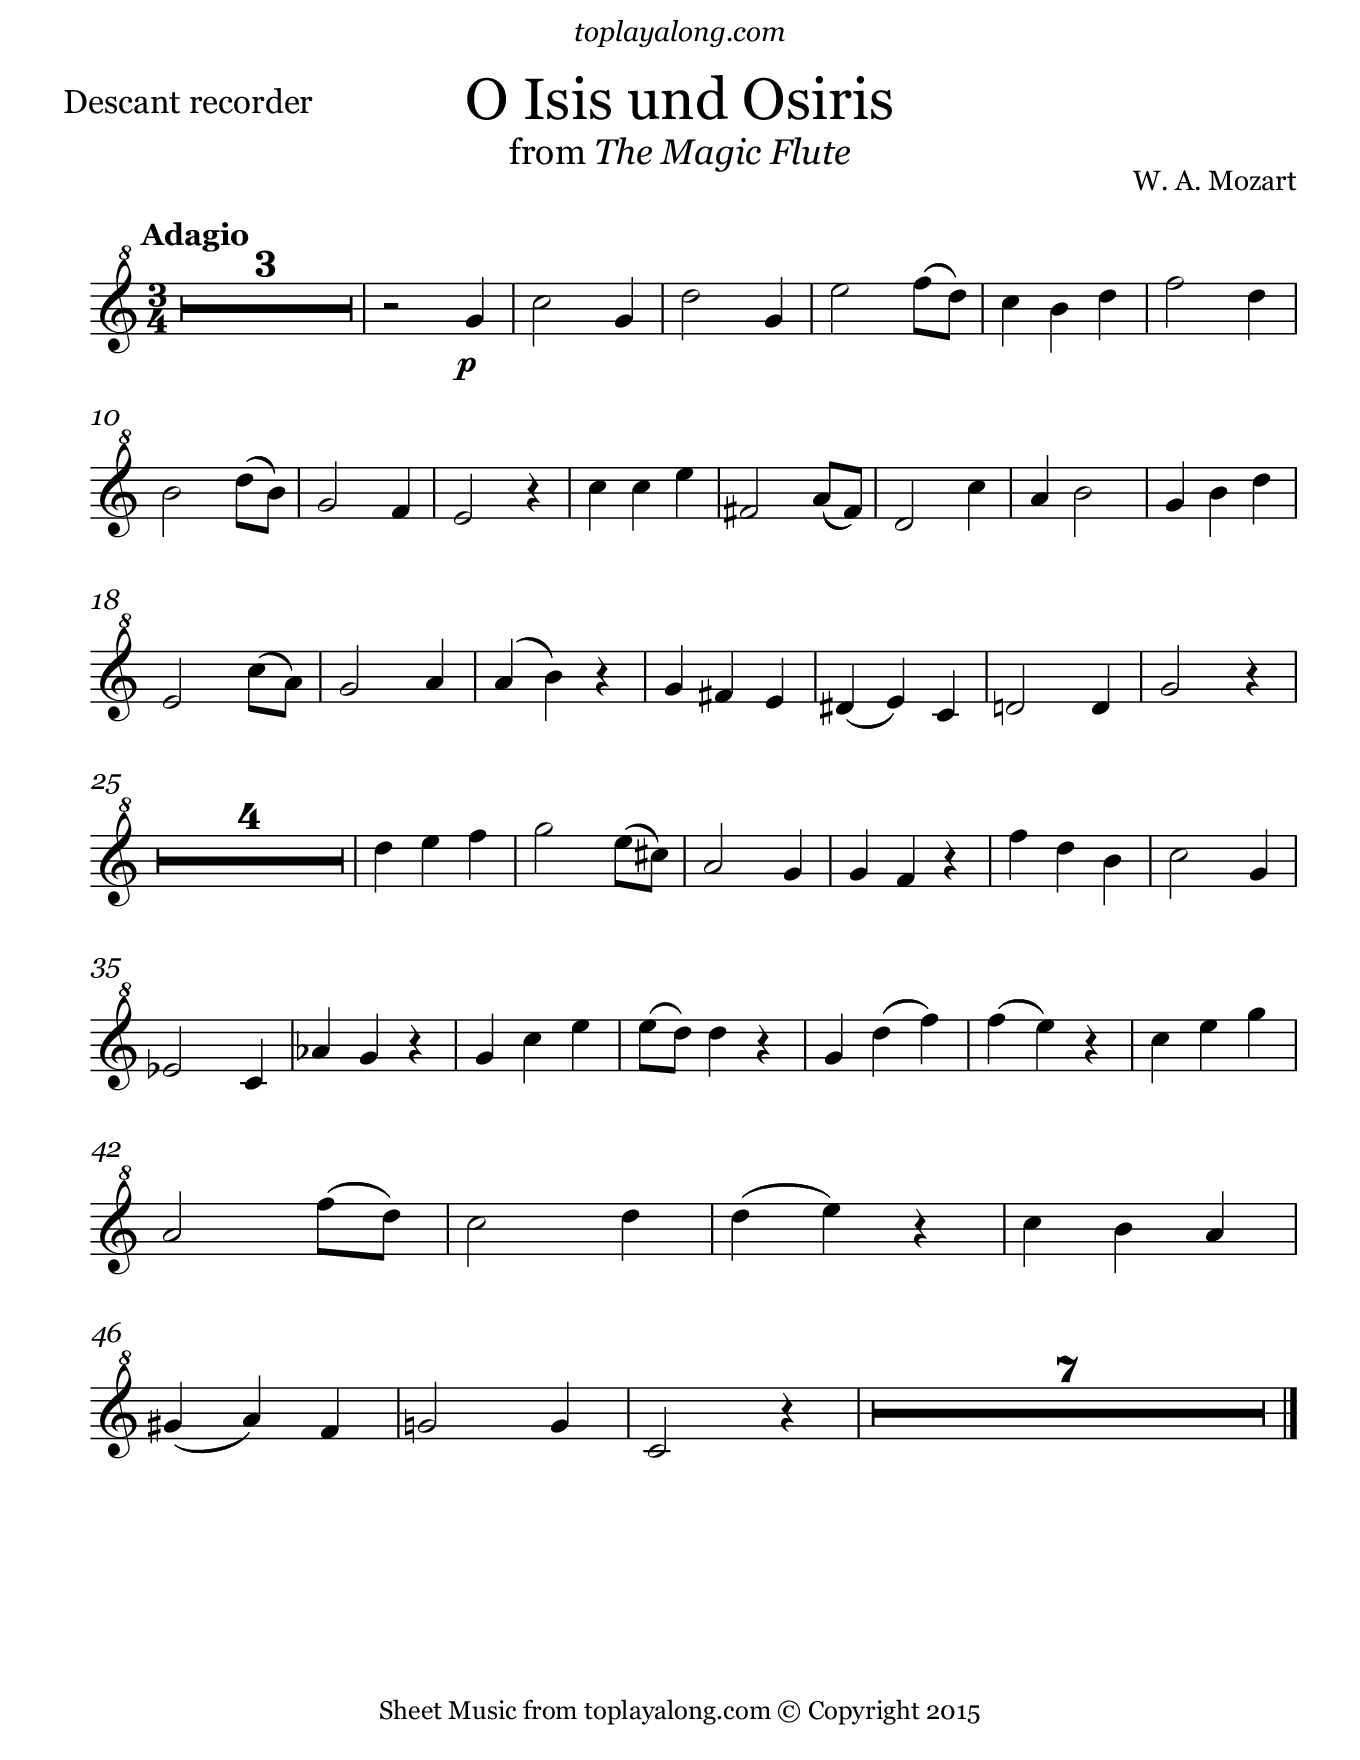 O Isis und Osiris by Mozart. Sheet music for Recorder, page 1.